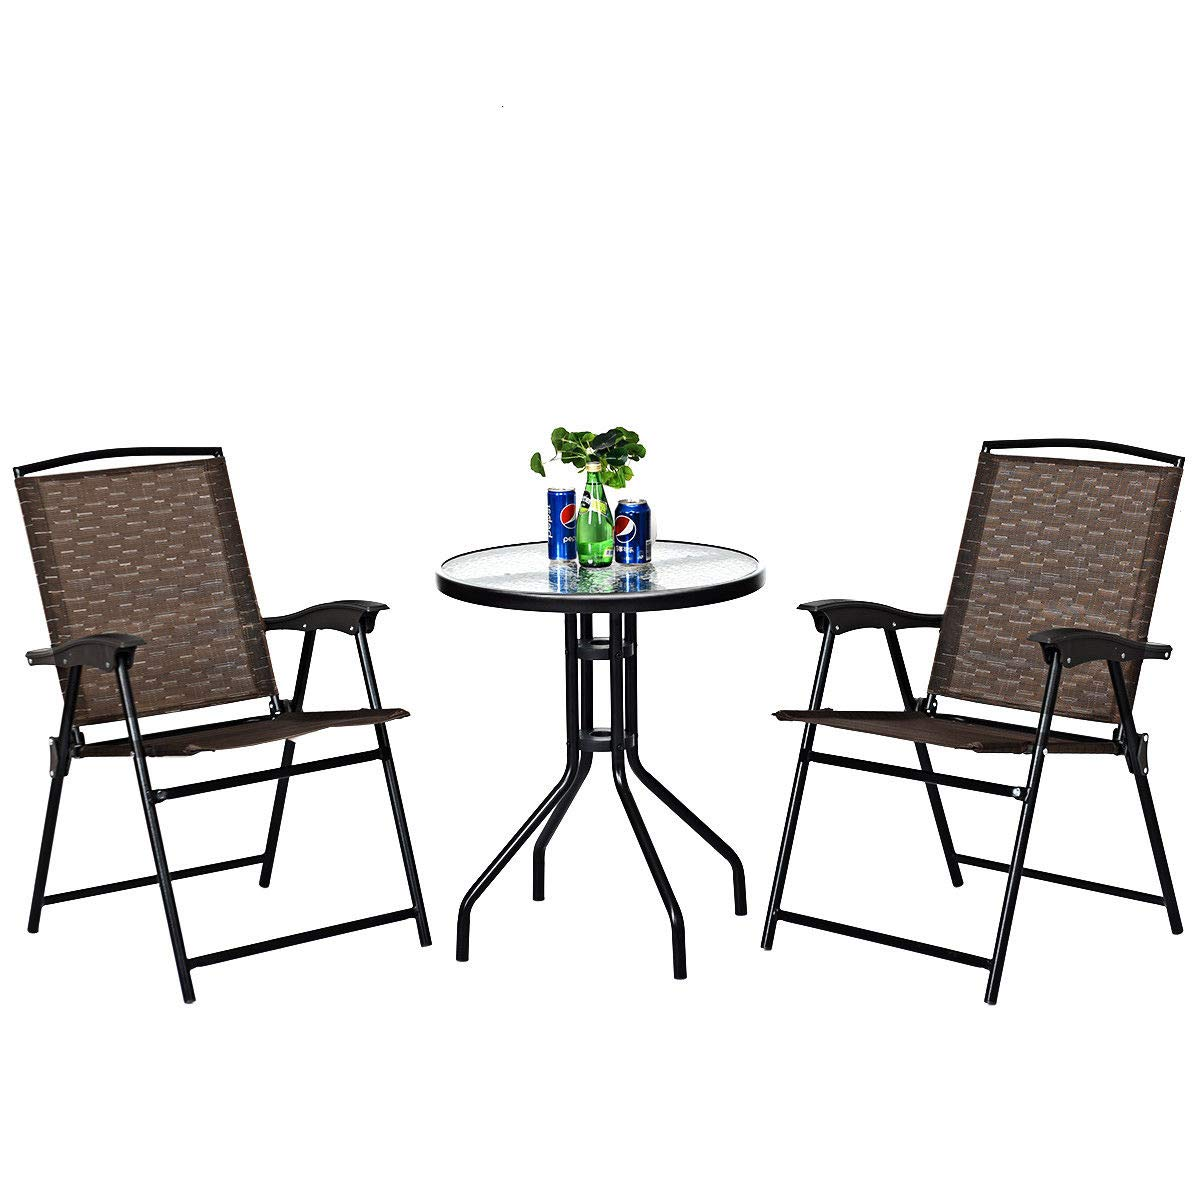 Goplus 3 Piece Bistro Set Outdoor Patio Furniture Garden Round Table and Folding Chairs